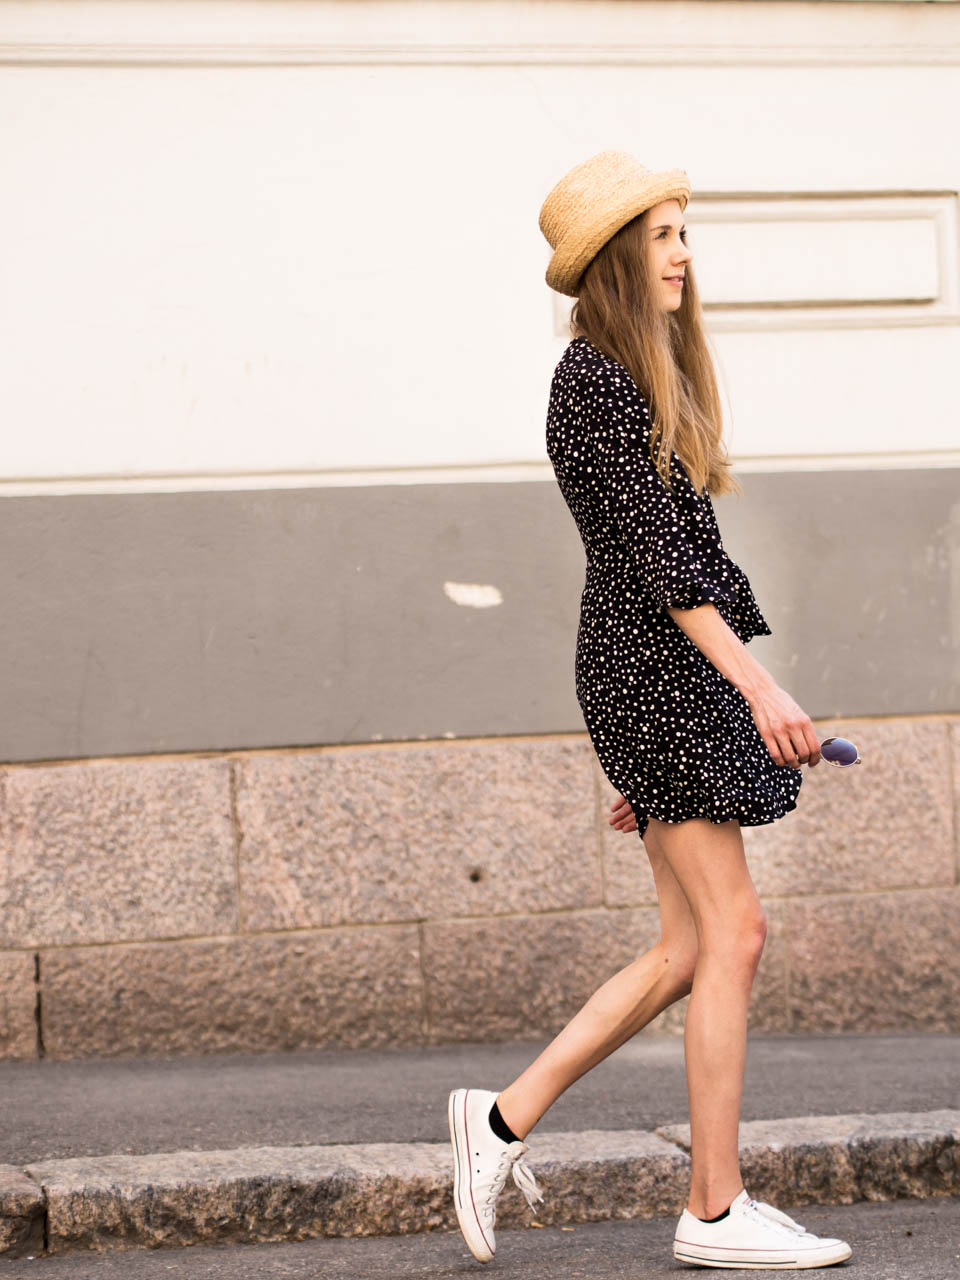 fashion-blogger-summer-outfit-inspiration-polka-dot-dress